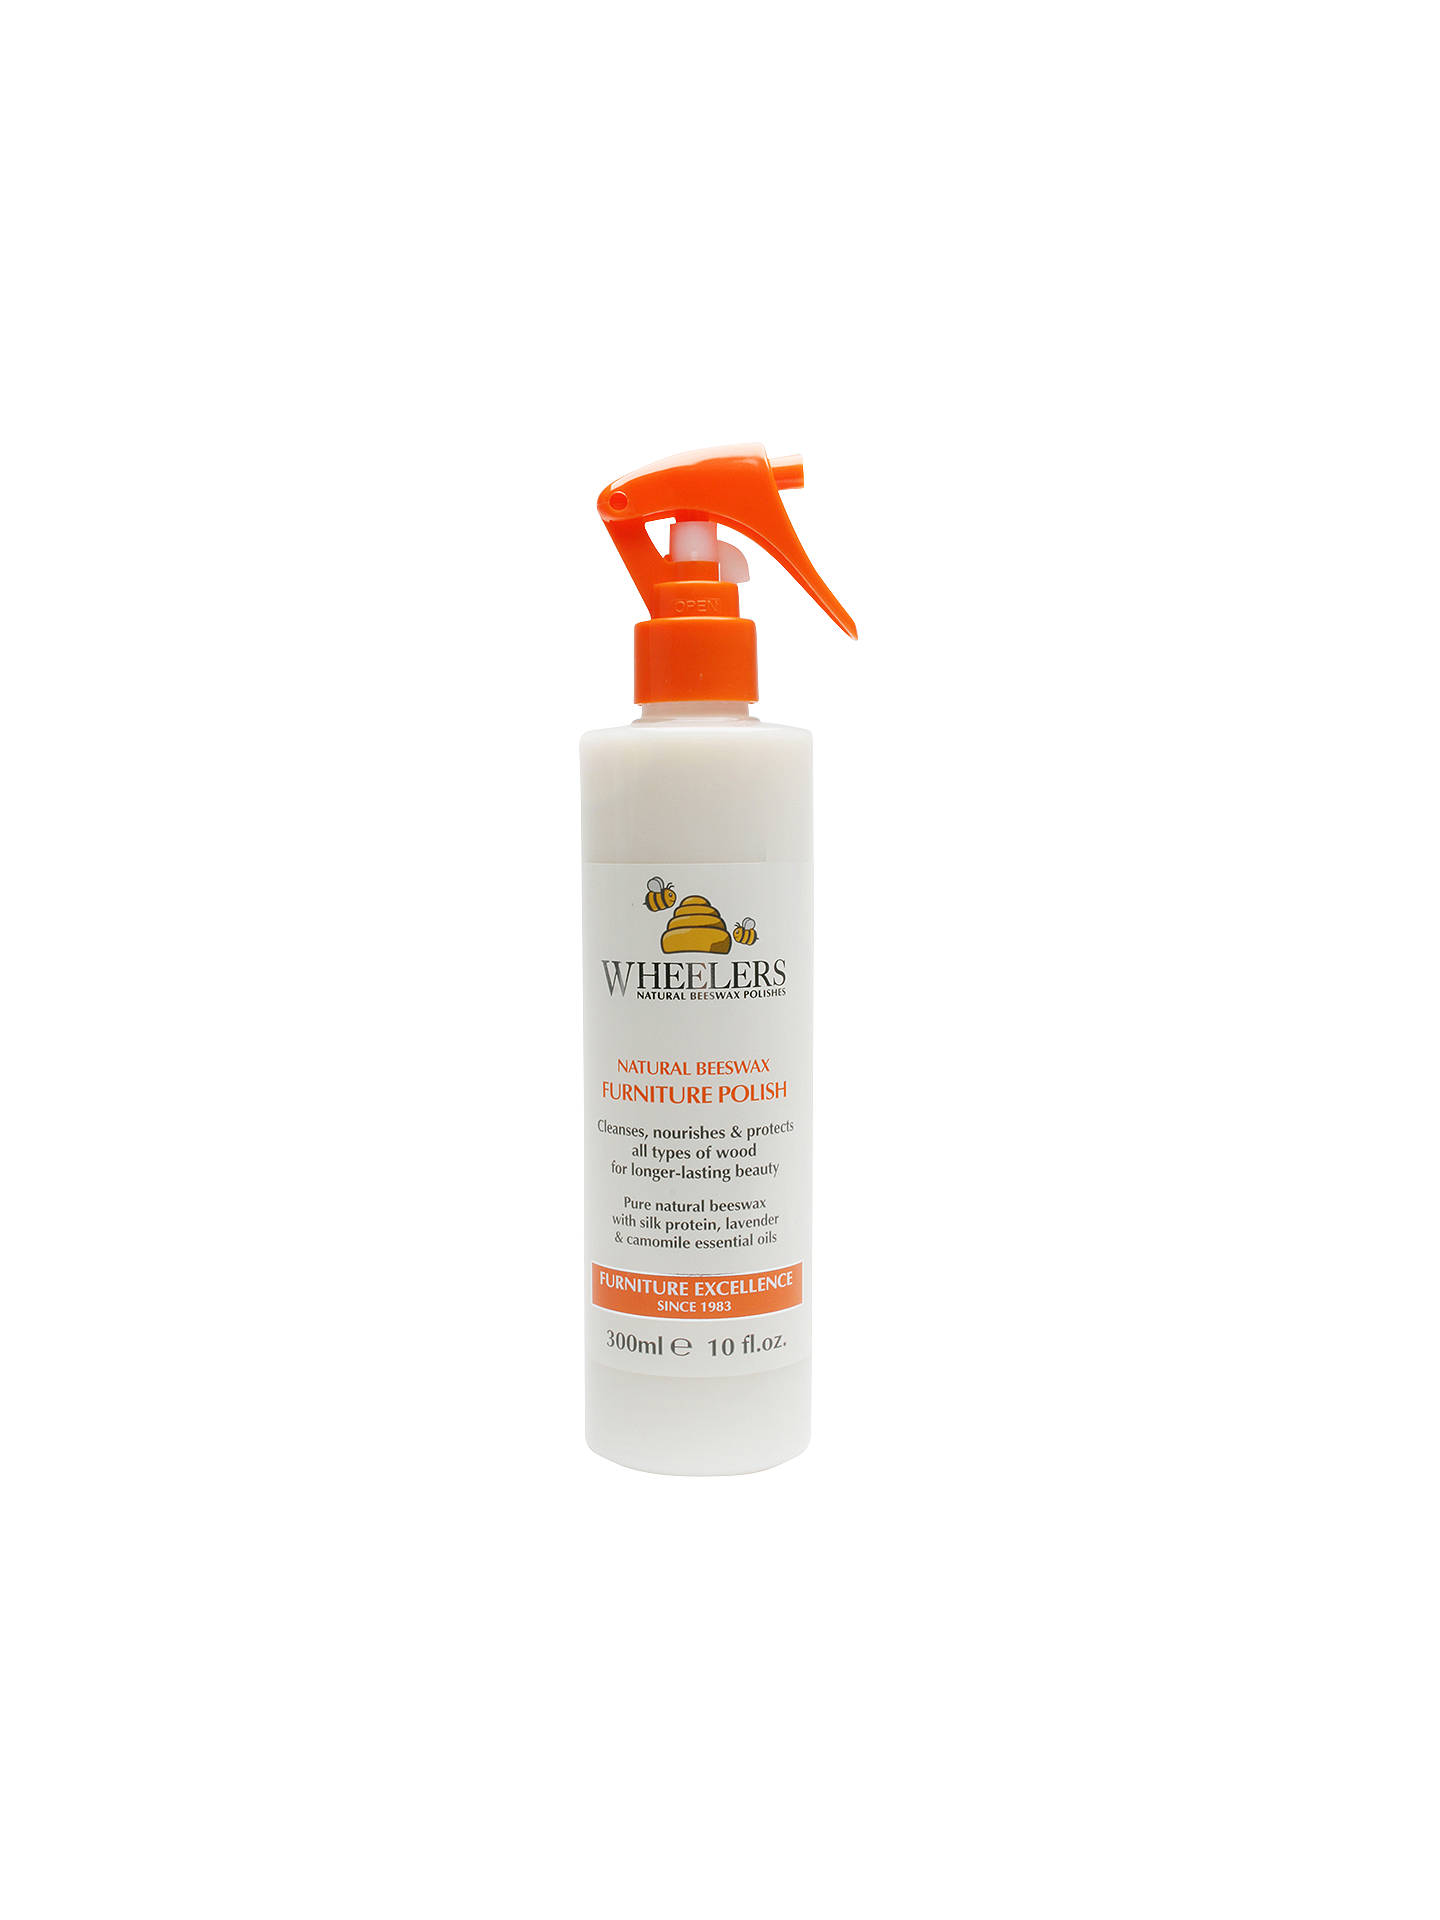 Buy Wheelers Natural Beeswax Furniture Polish Spray, 300ml Online at johnlewis.com ...